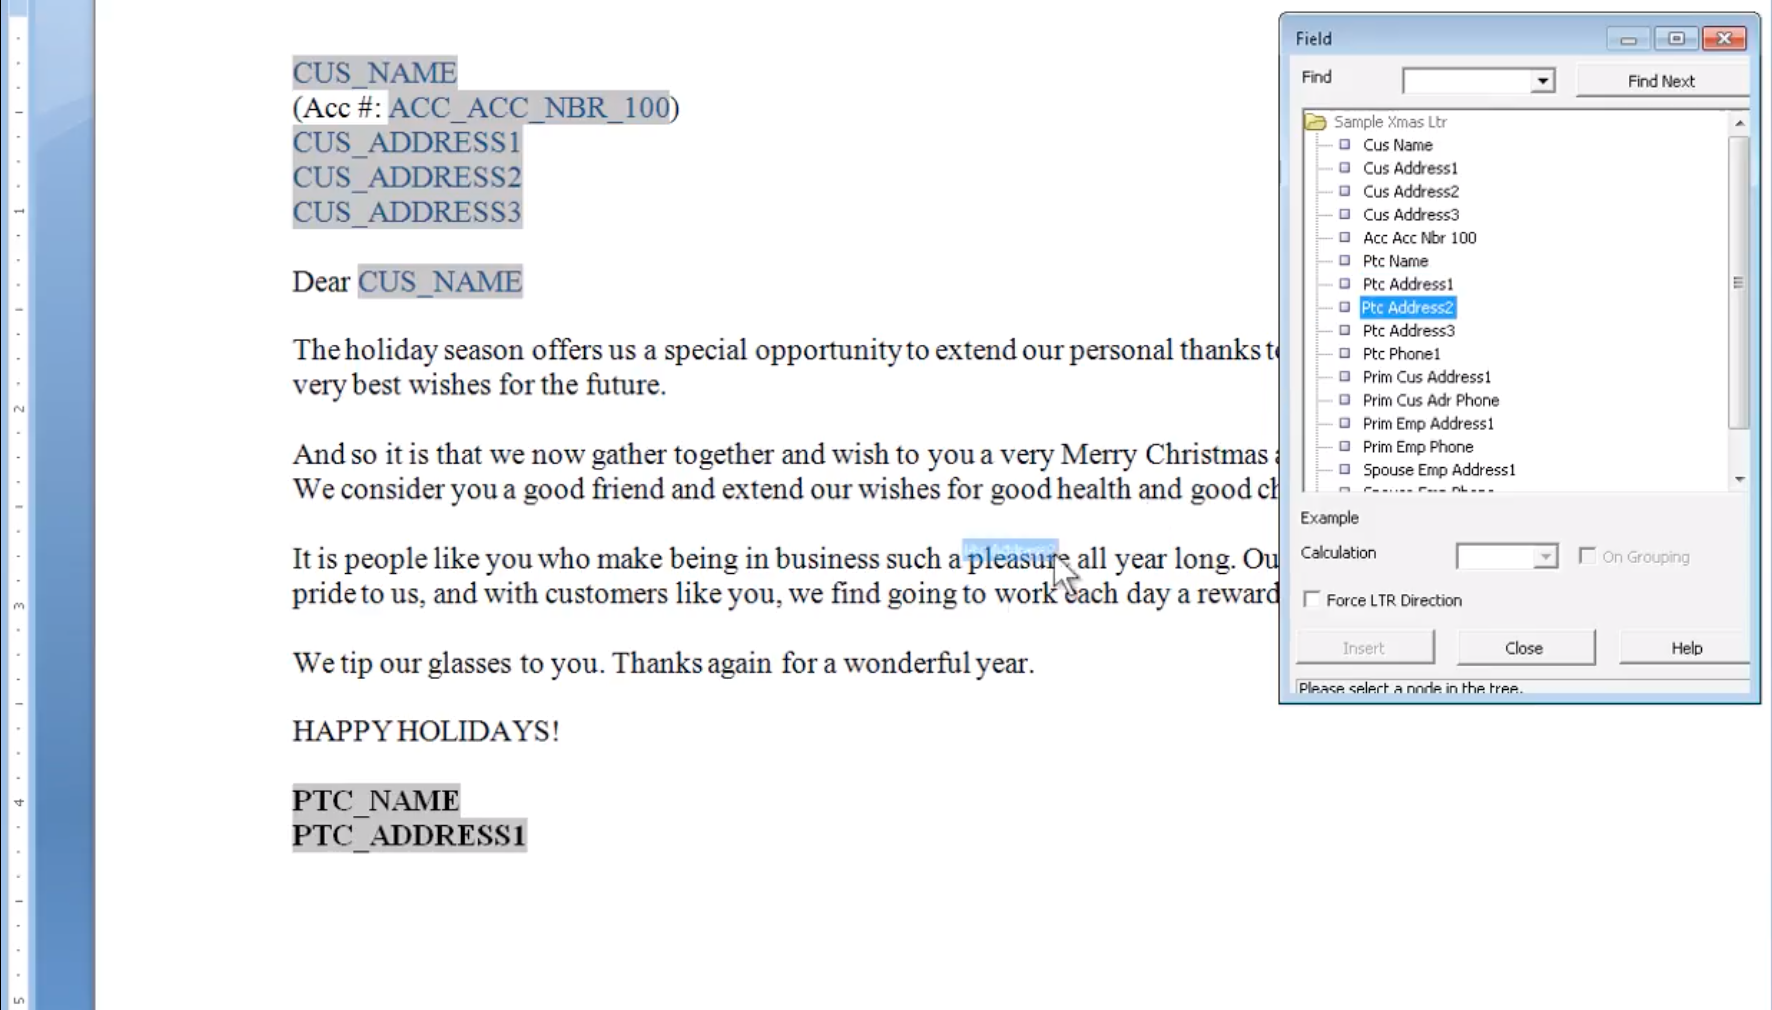 LLaaS Email Templates